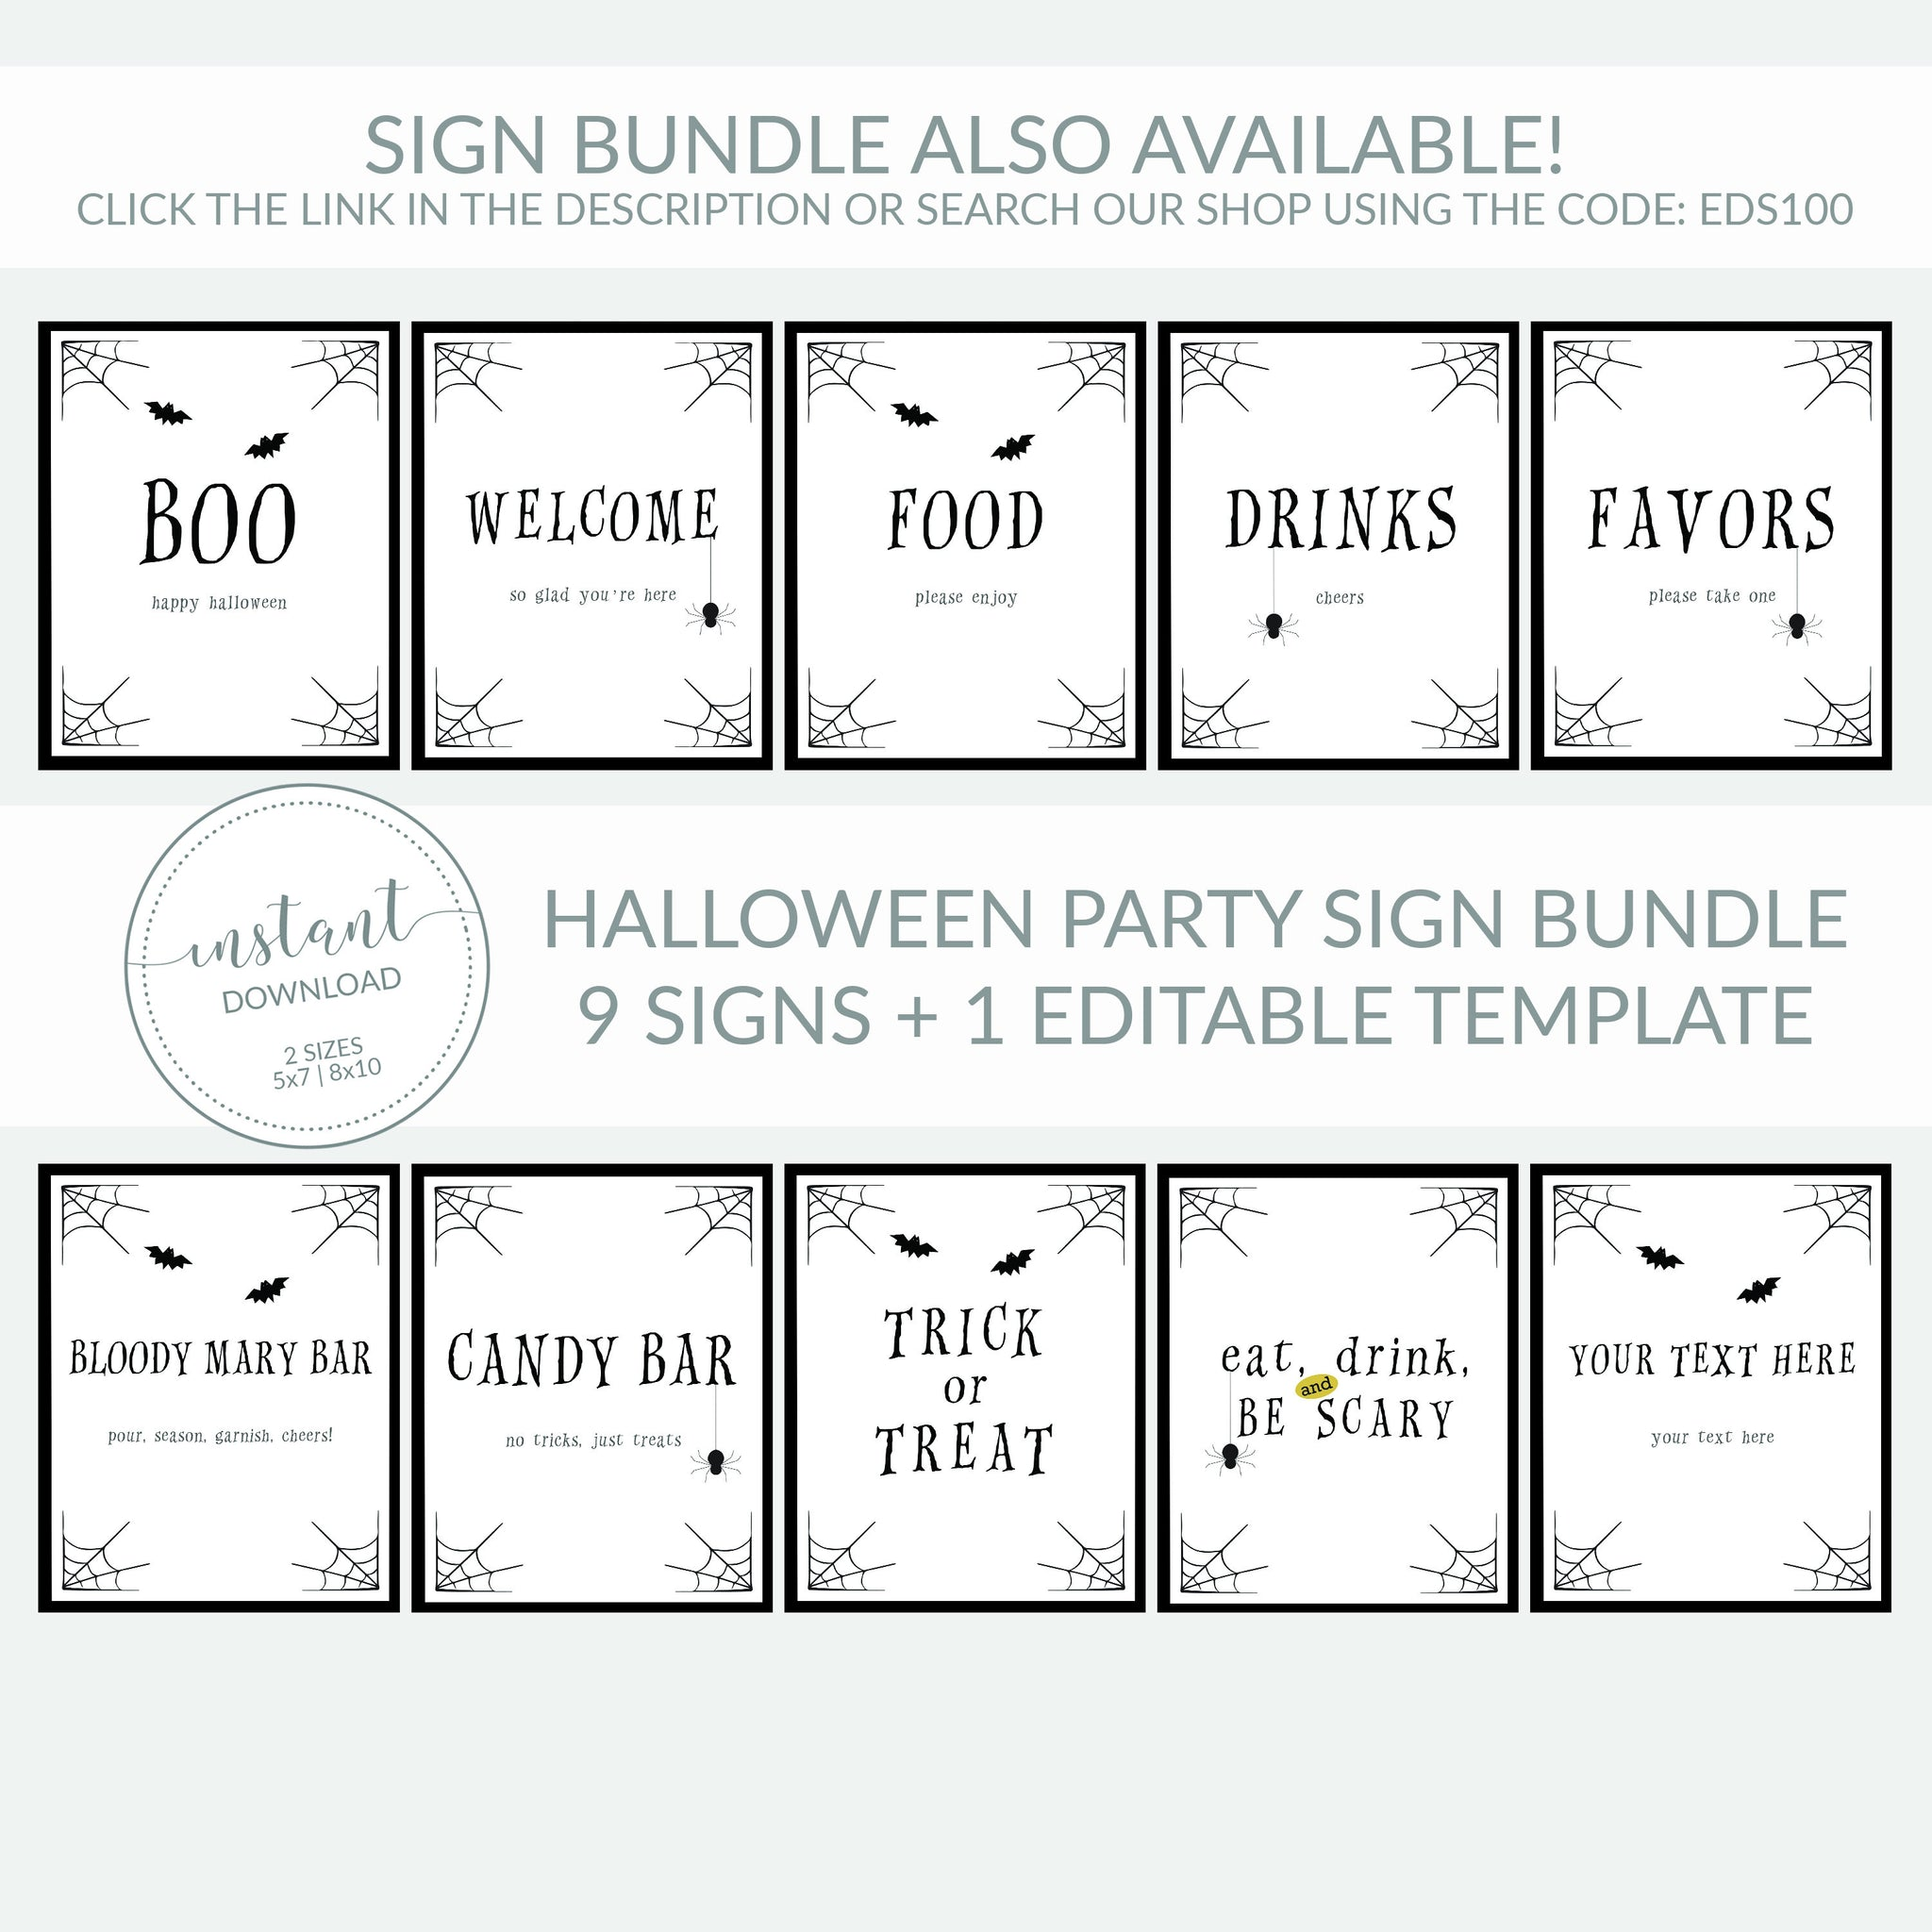 Halloween Welcome Sign Printable, Halloween Decor Porch Sign, Halloween Party Welcome Sign, INSTANT DOWNLOAD, Halloween Party Decor - EDS100 - @PlumPolkaDot